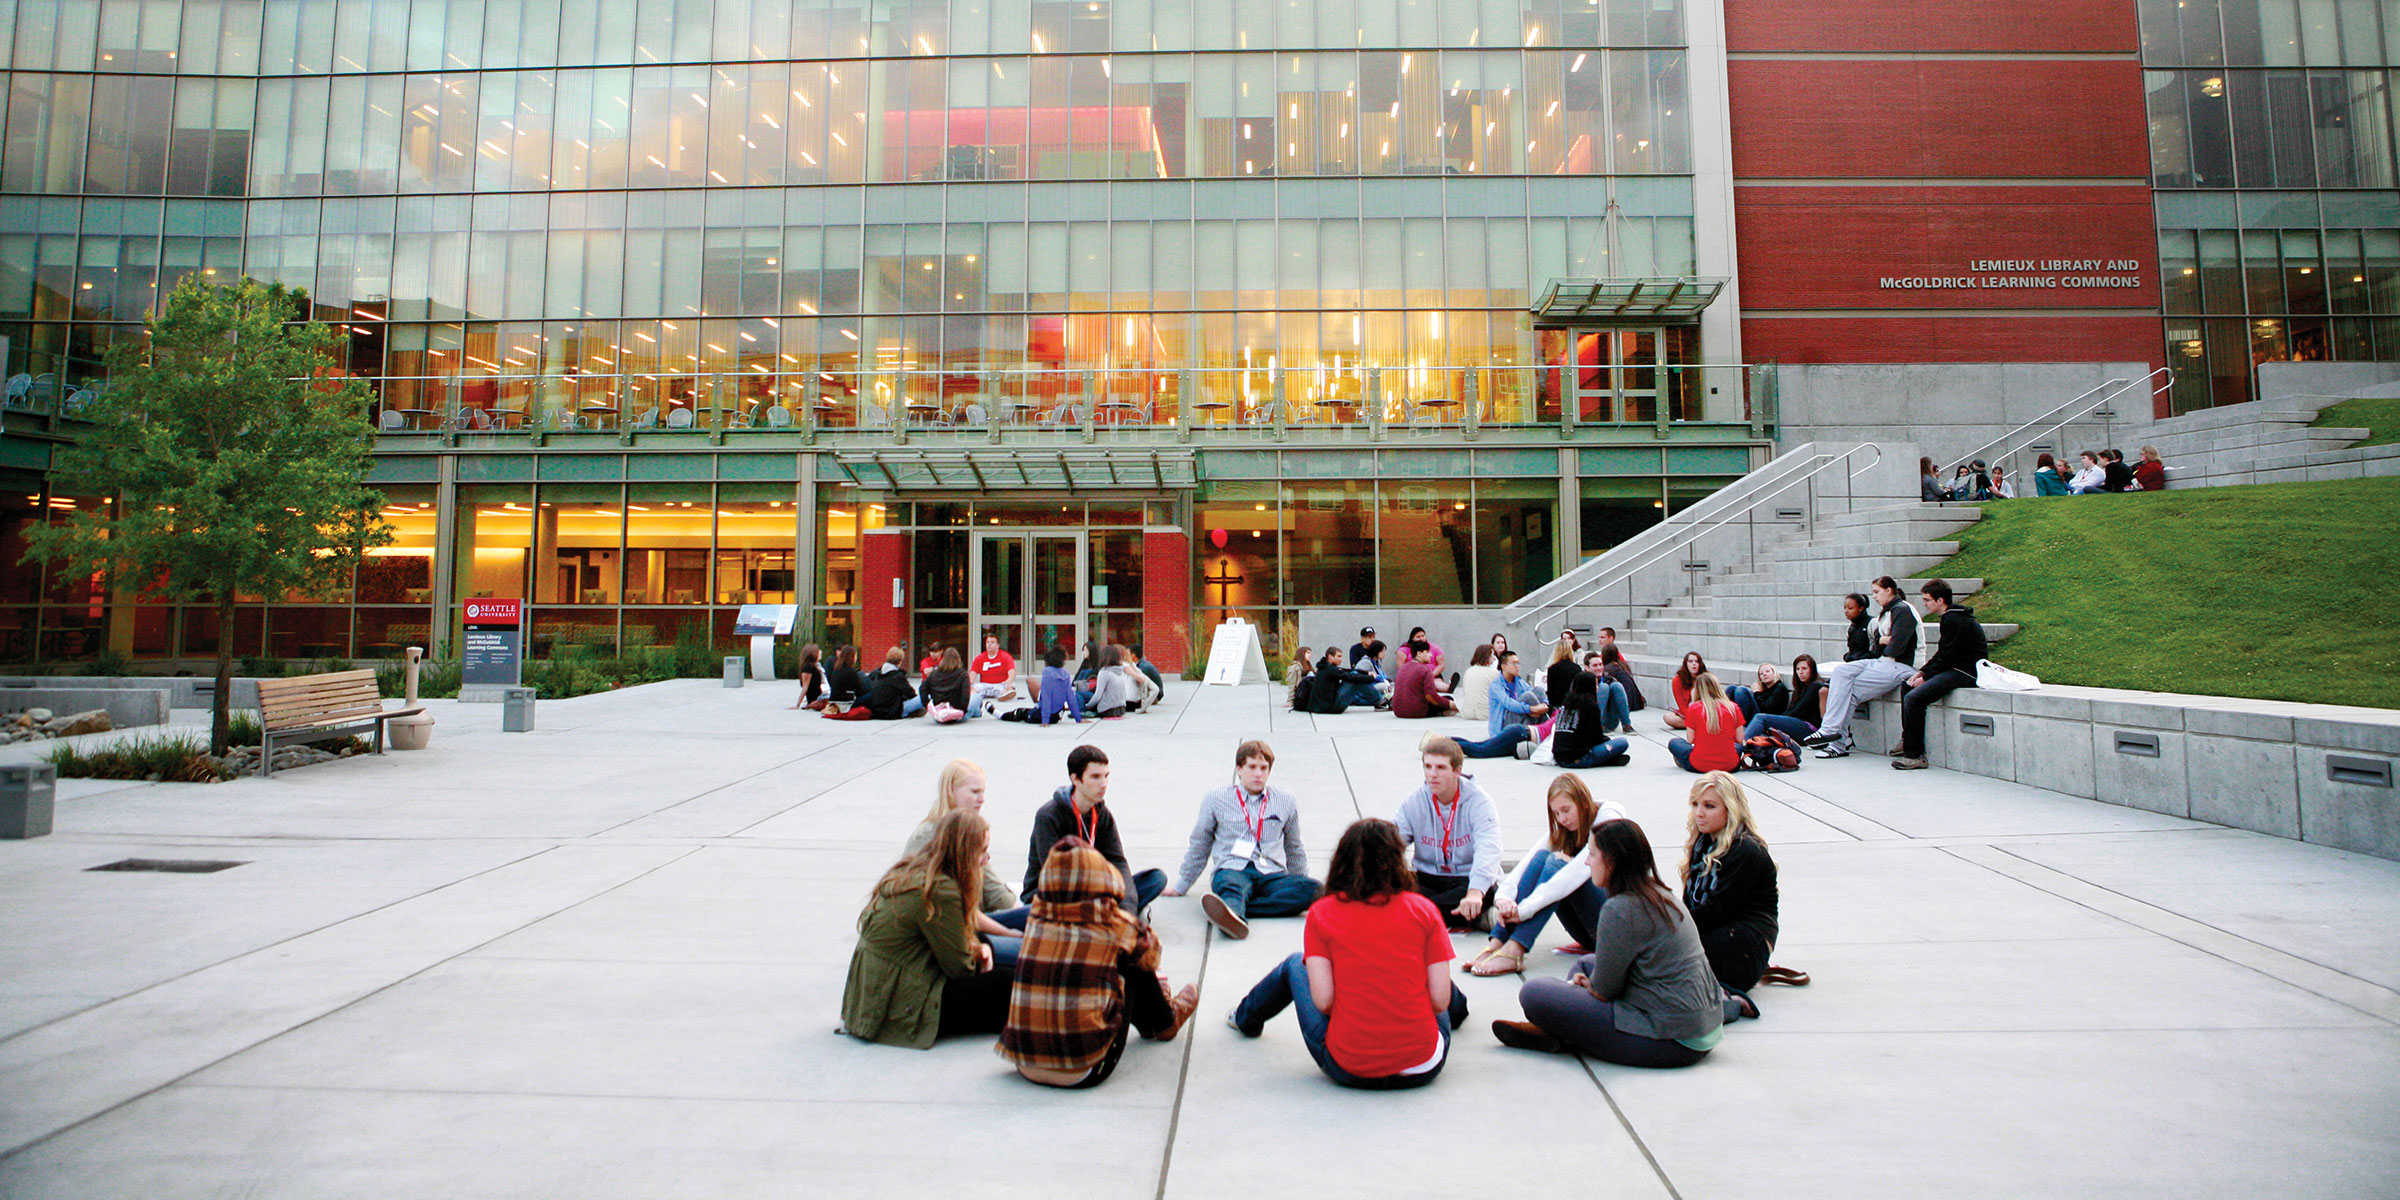 a group of students talk and sit in a circle in the Lemieux Library plaza